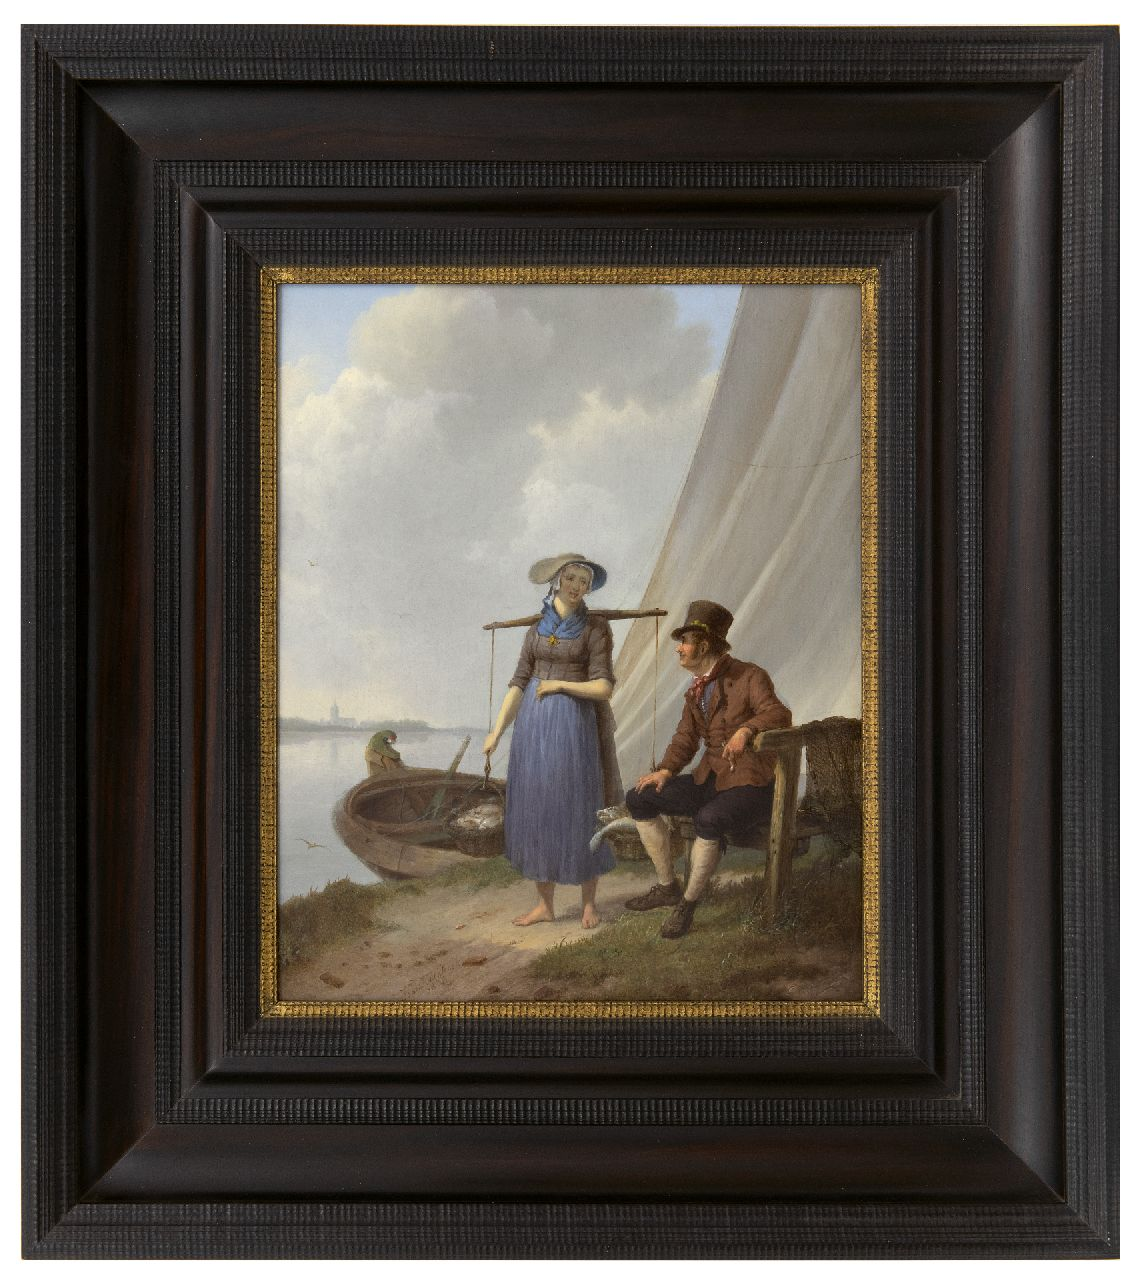 Koekkoek J.H.  | Johannes Hermanus Koekkoek | Paintings offered for sale | A fisherman and woman, chatting, oil on panel 33.1 x 26.9 cm, signed l.c. and dated 1834